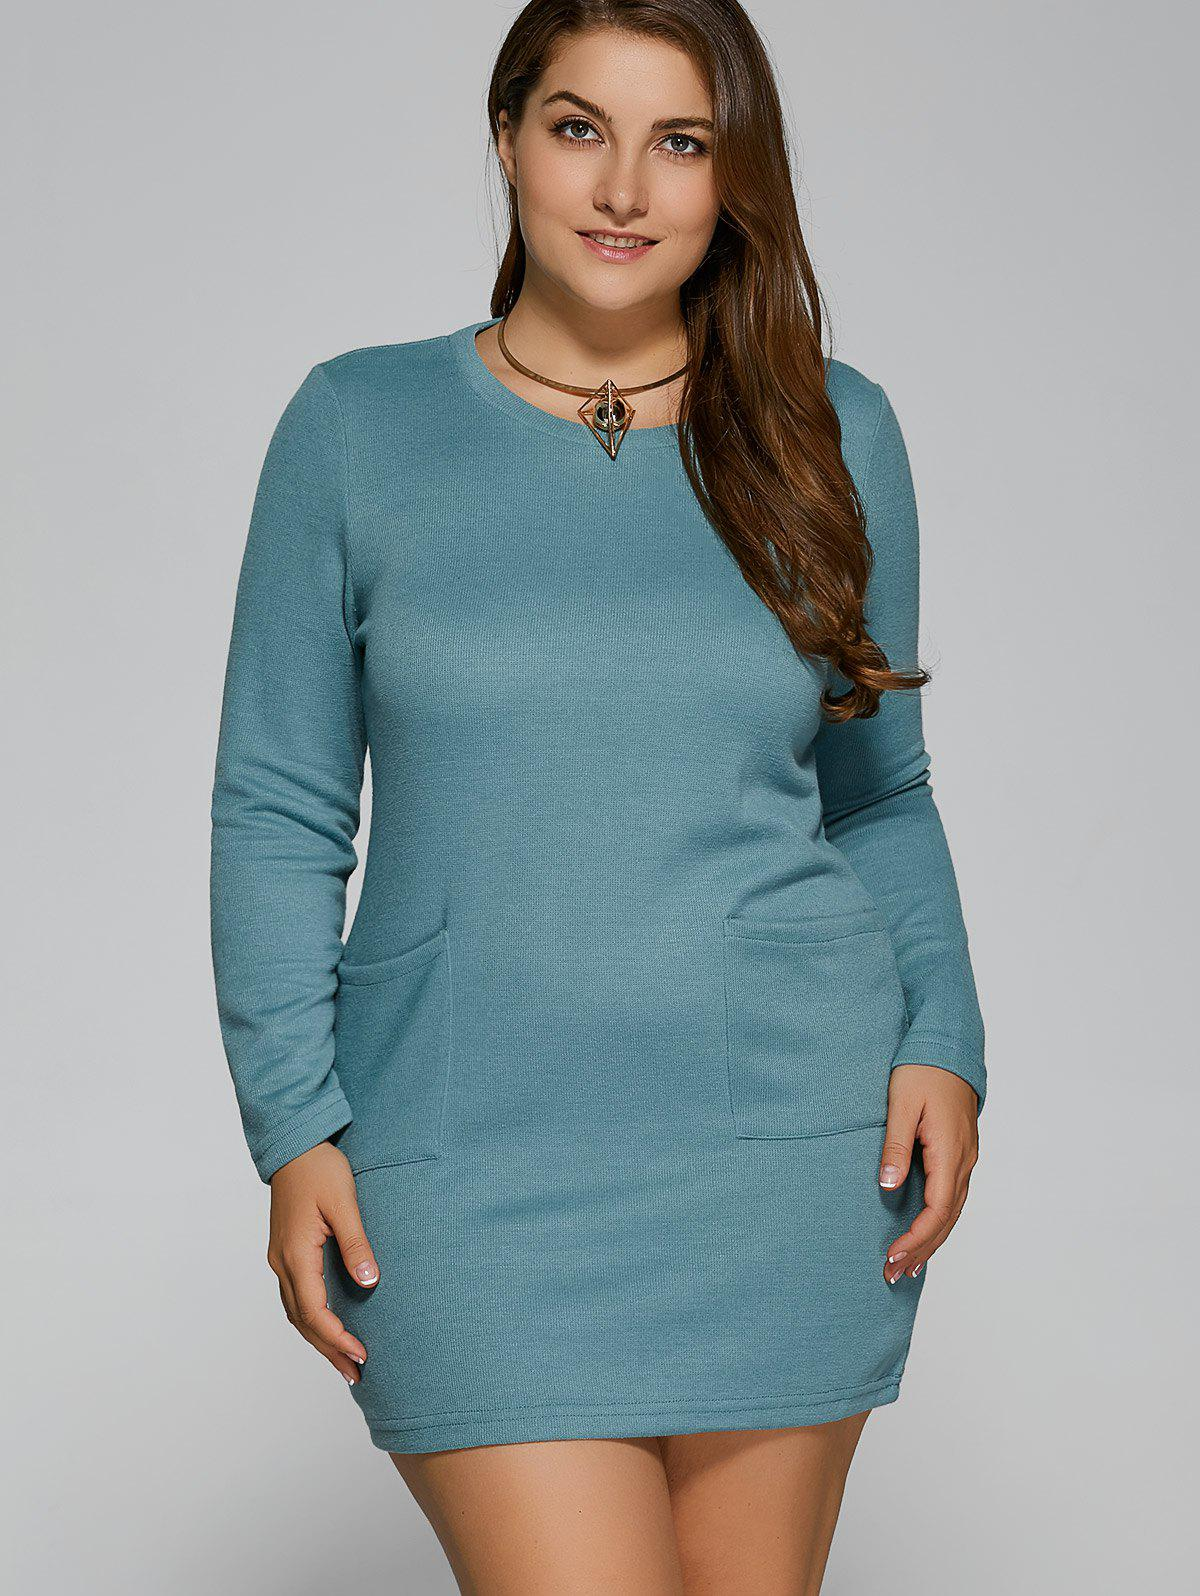 Plus Size Pockets Design Mini Dress - LIGHT BLUE L